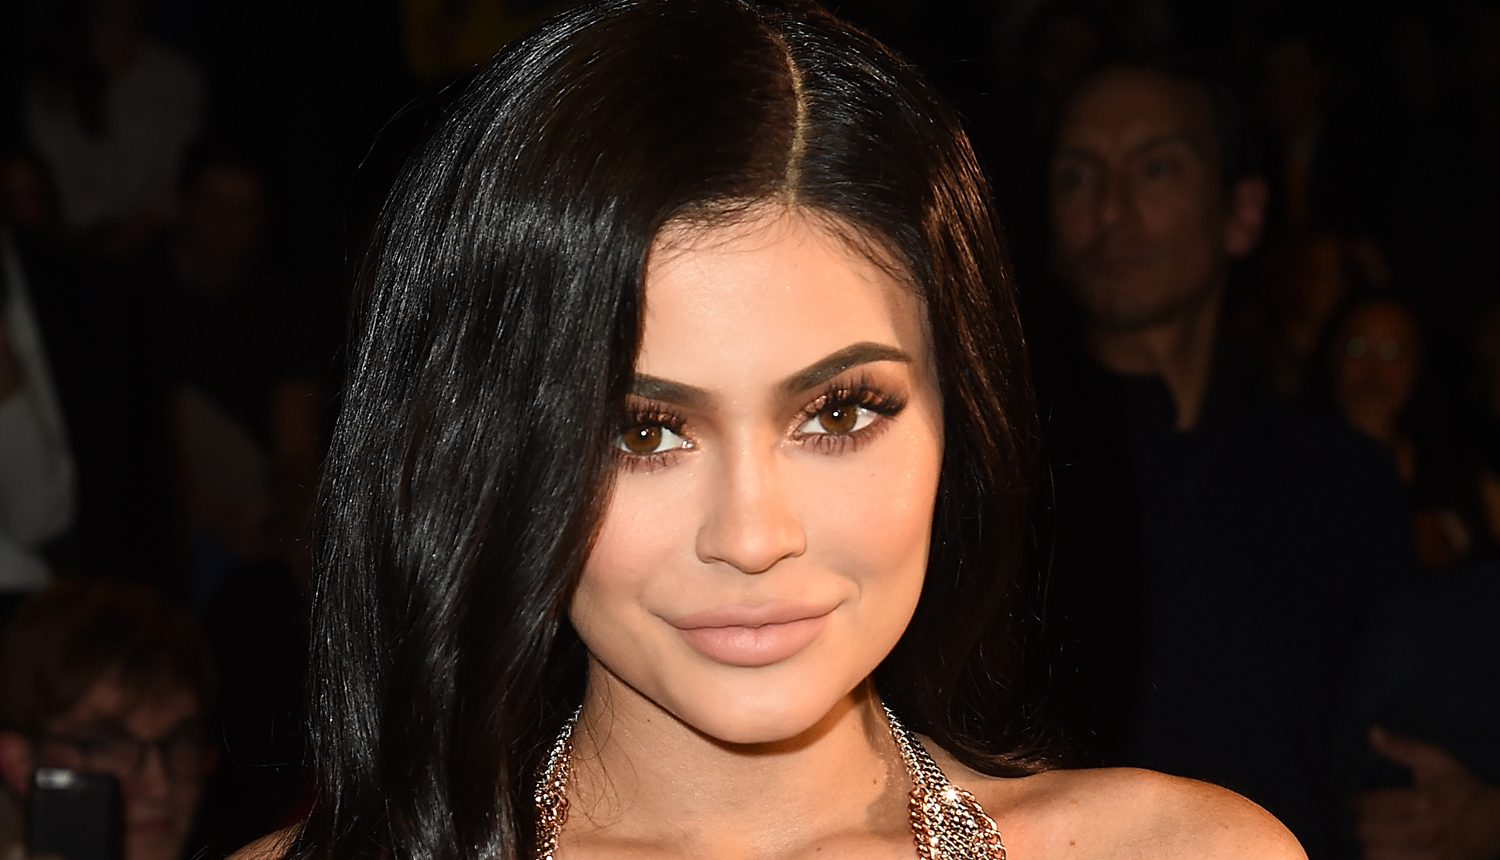 Kylie Jenner Completely Missing from Kardashian Christmas Card 2017 ...